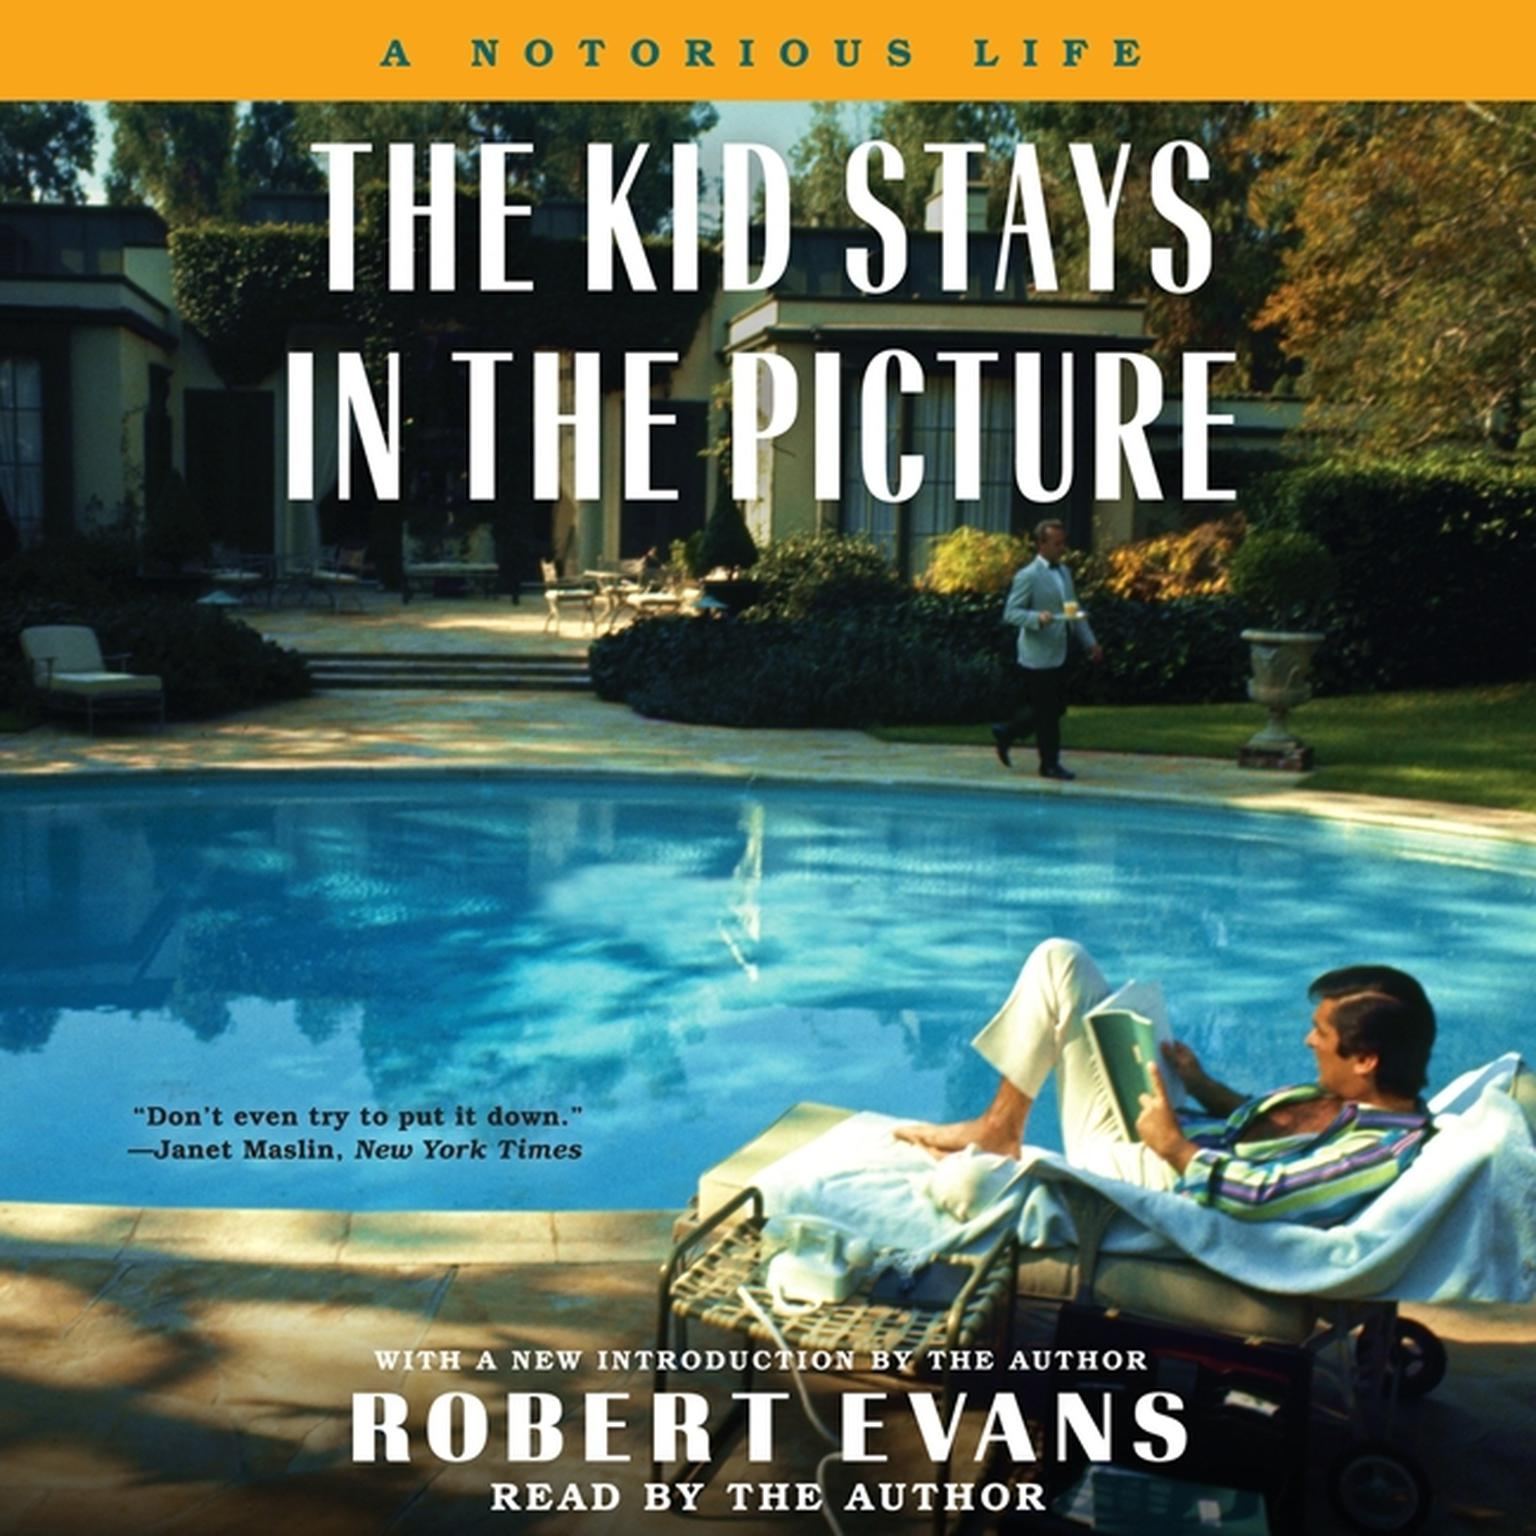 Printable The Kid Stays in the Picture: A Notorious Life Audiobook Cover Art